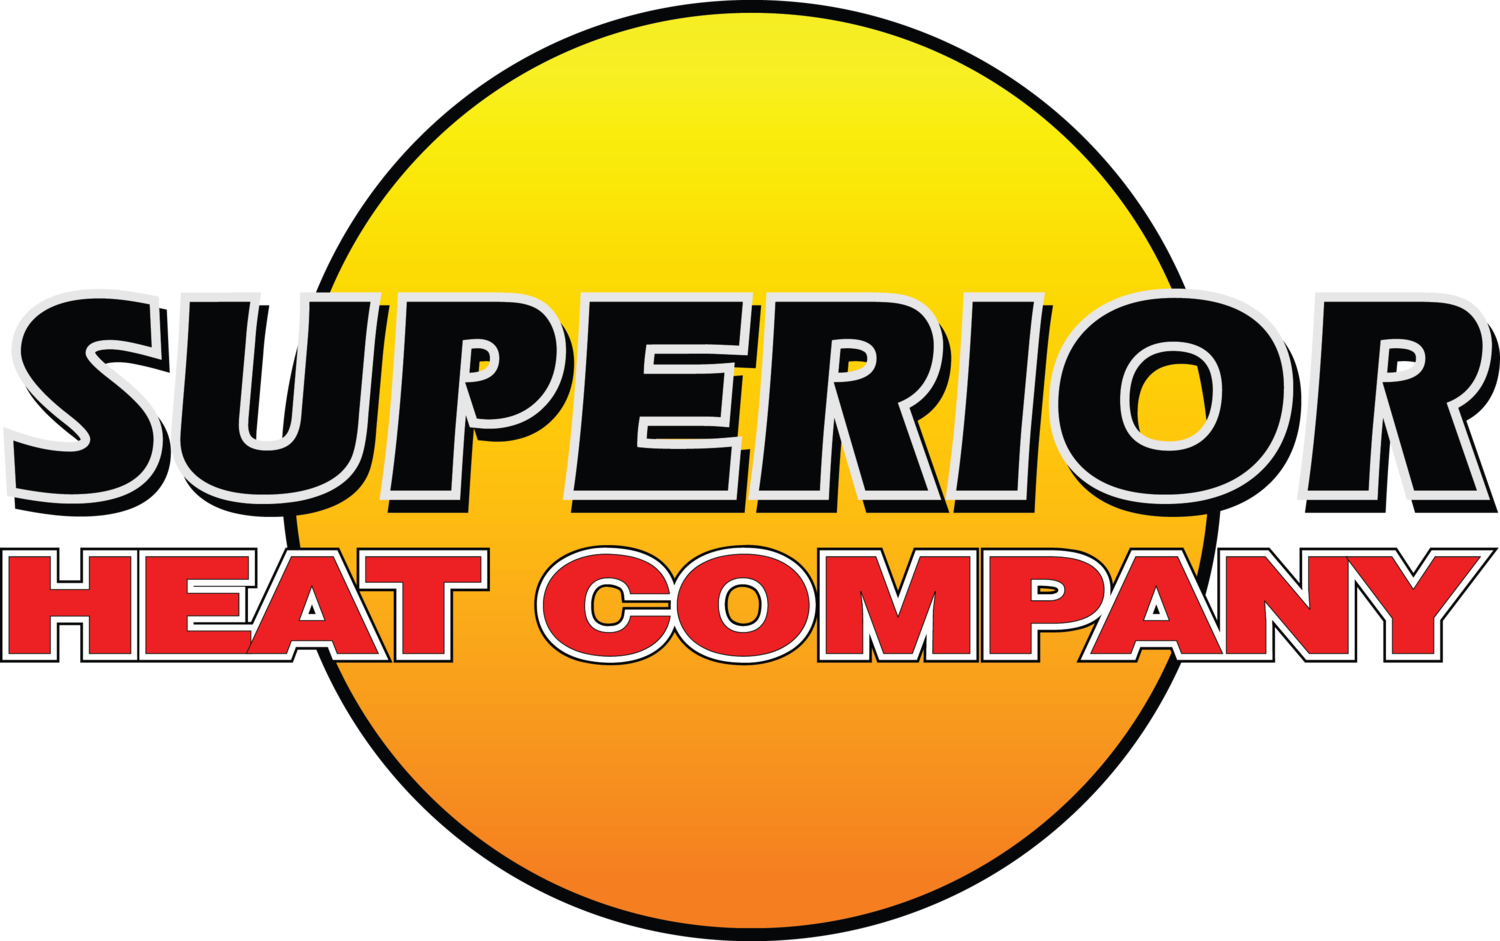 Superior Heat Company